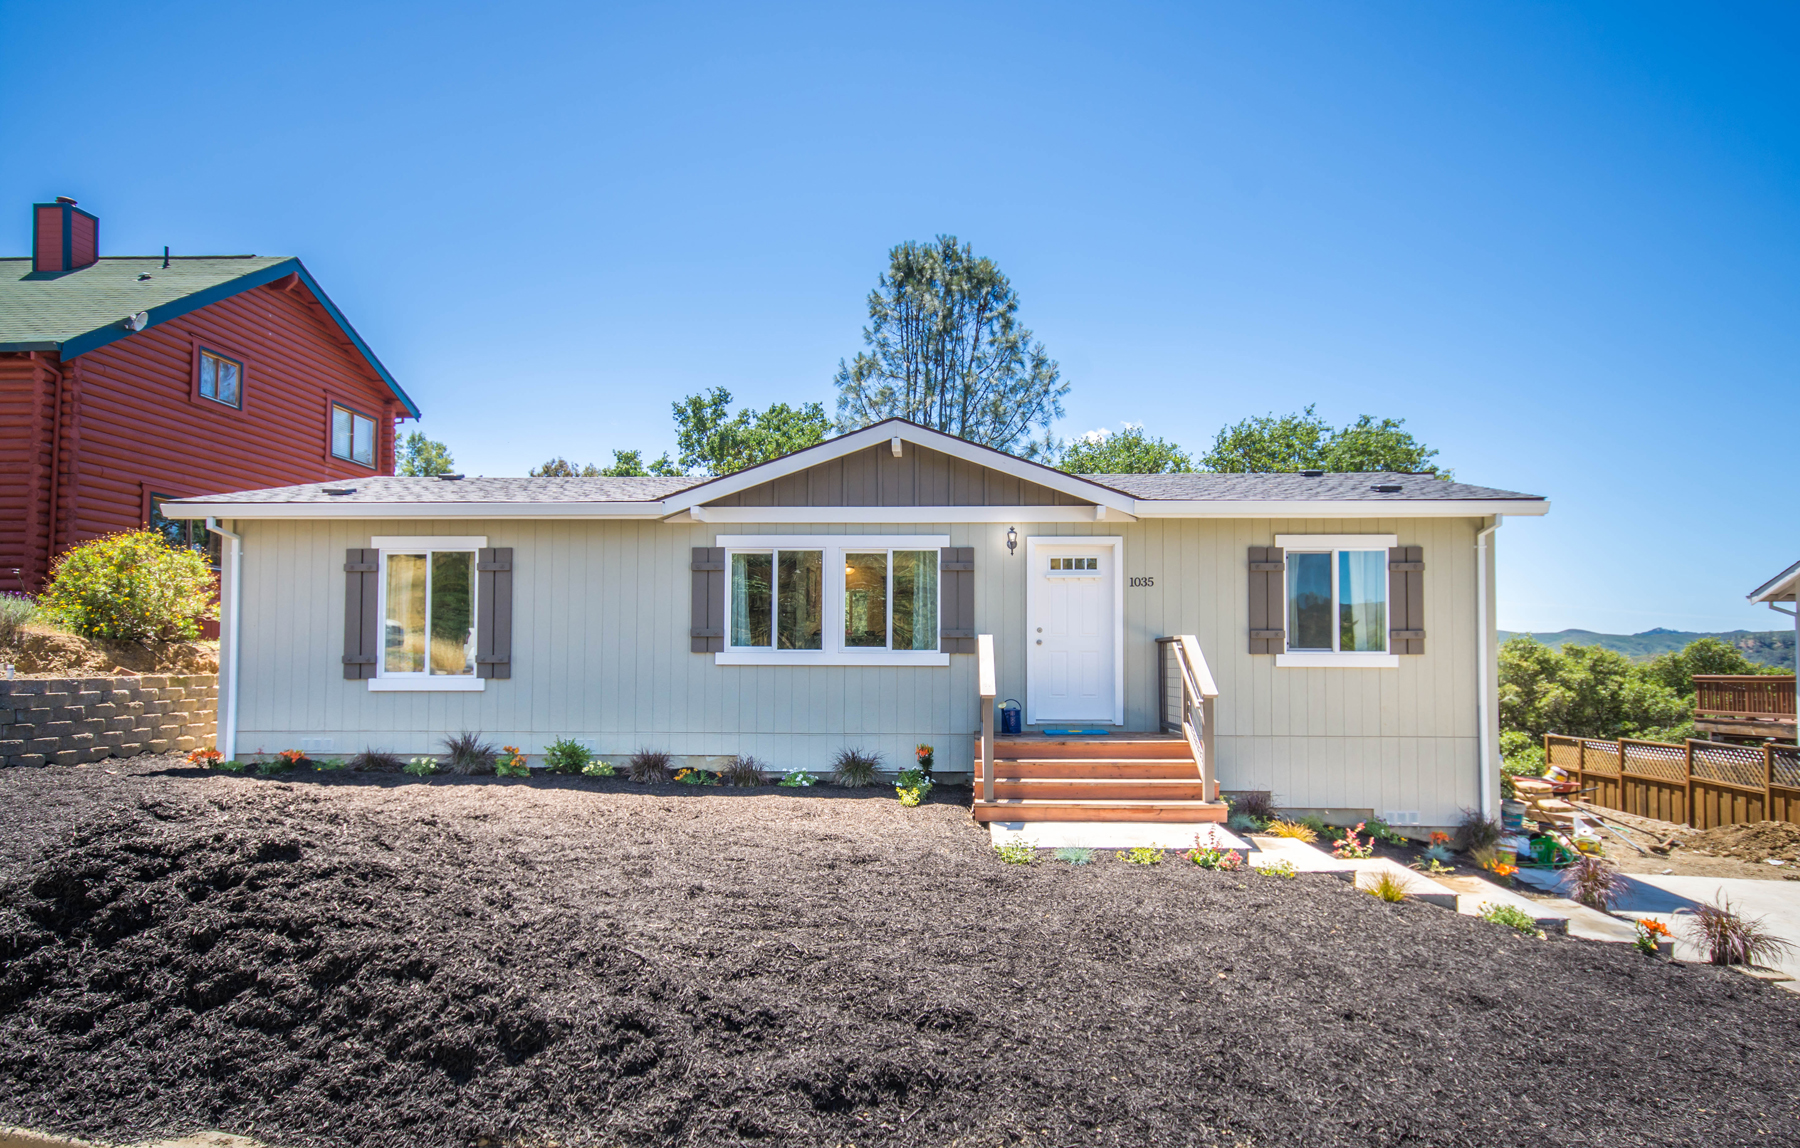 Single Family Home for Sale at A Brand New Cottage Style Home 1035 Rimrock Drive Napa, California 94559 United States